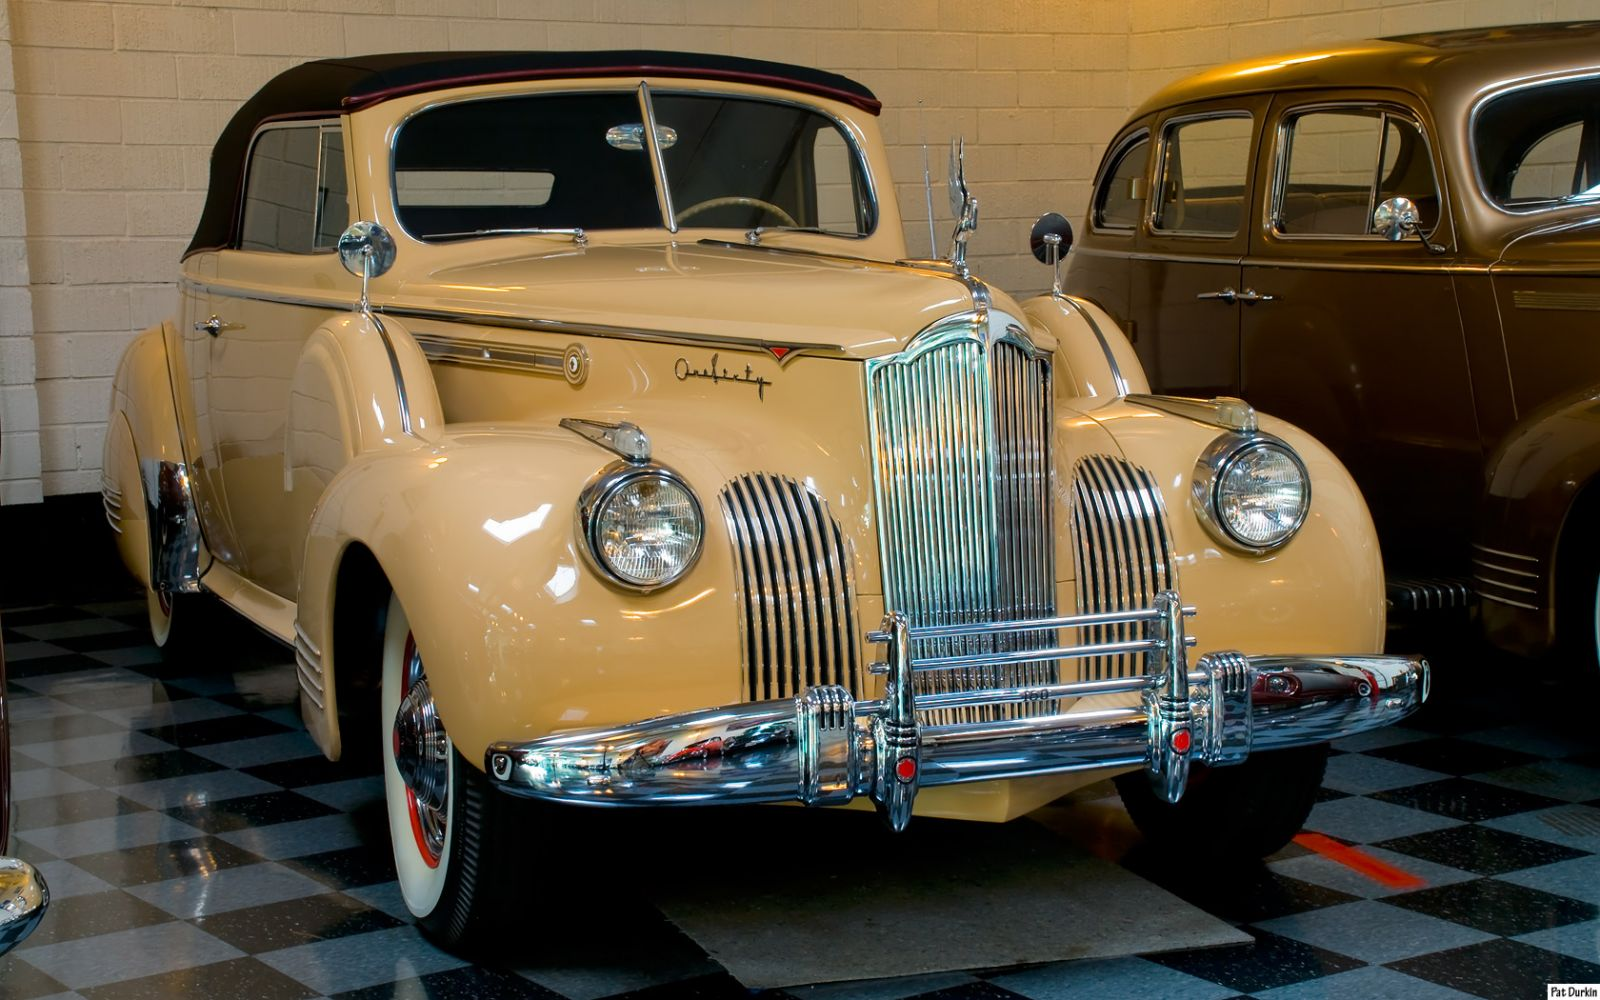 1941 Packard 1479 Convertible Coupe (160) - beige - fvr